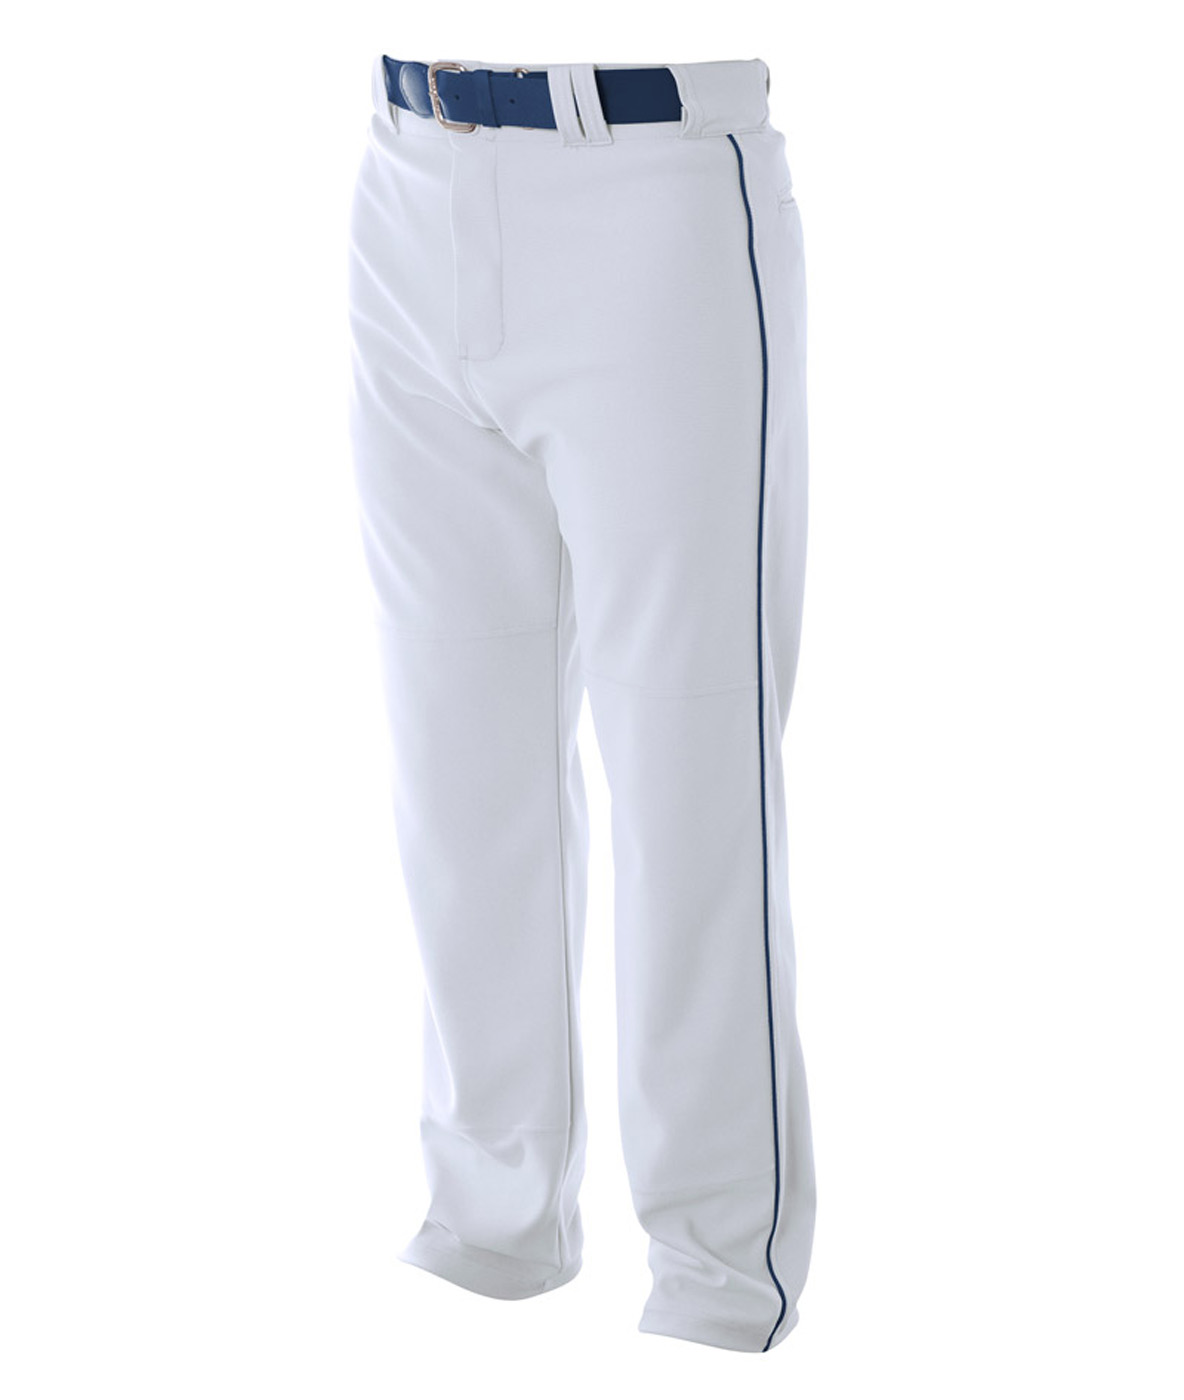 A4 Mens Pro Style Piped Baggy Baseball Pants Xx-Large Grey Navy Grey|Navy XX-Large by A4